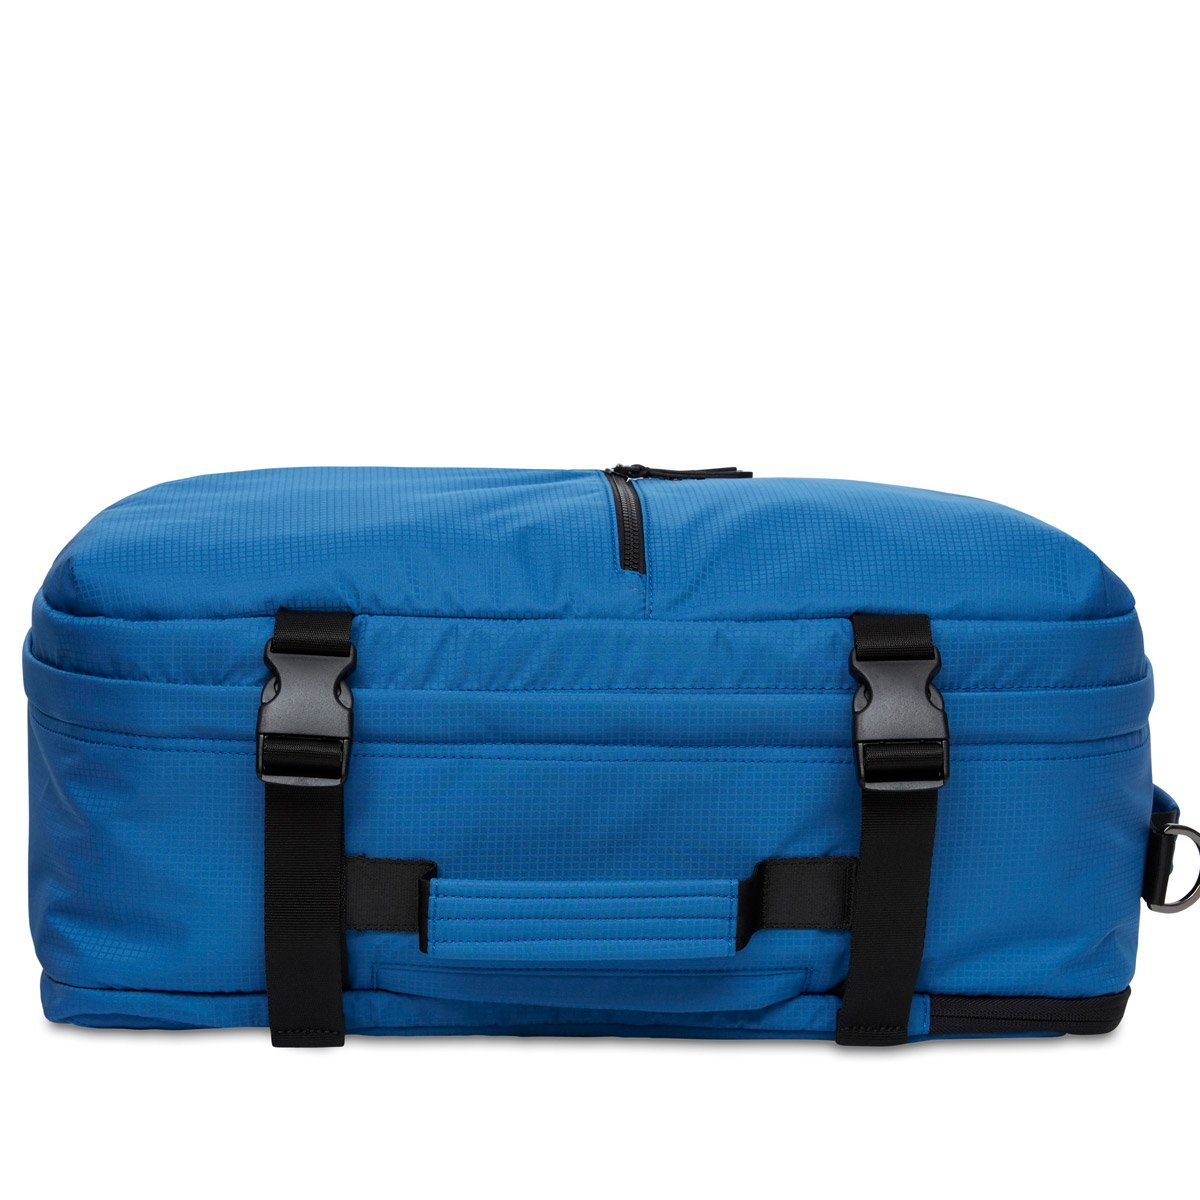 "Budapest 15.6"" Ultra Lightweight Travelpack -  Nautical Blue 